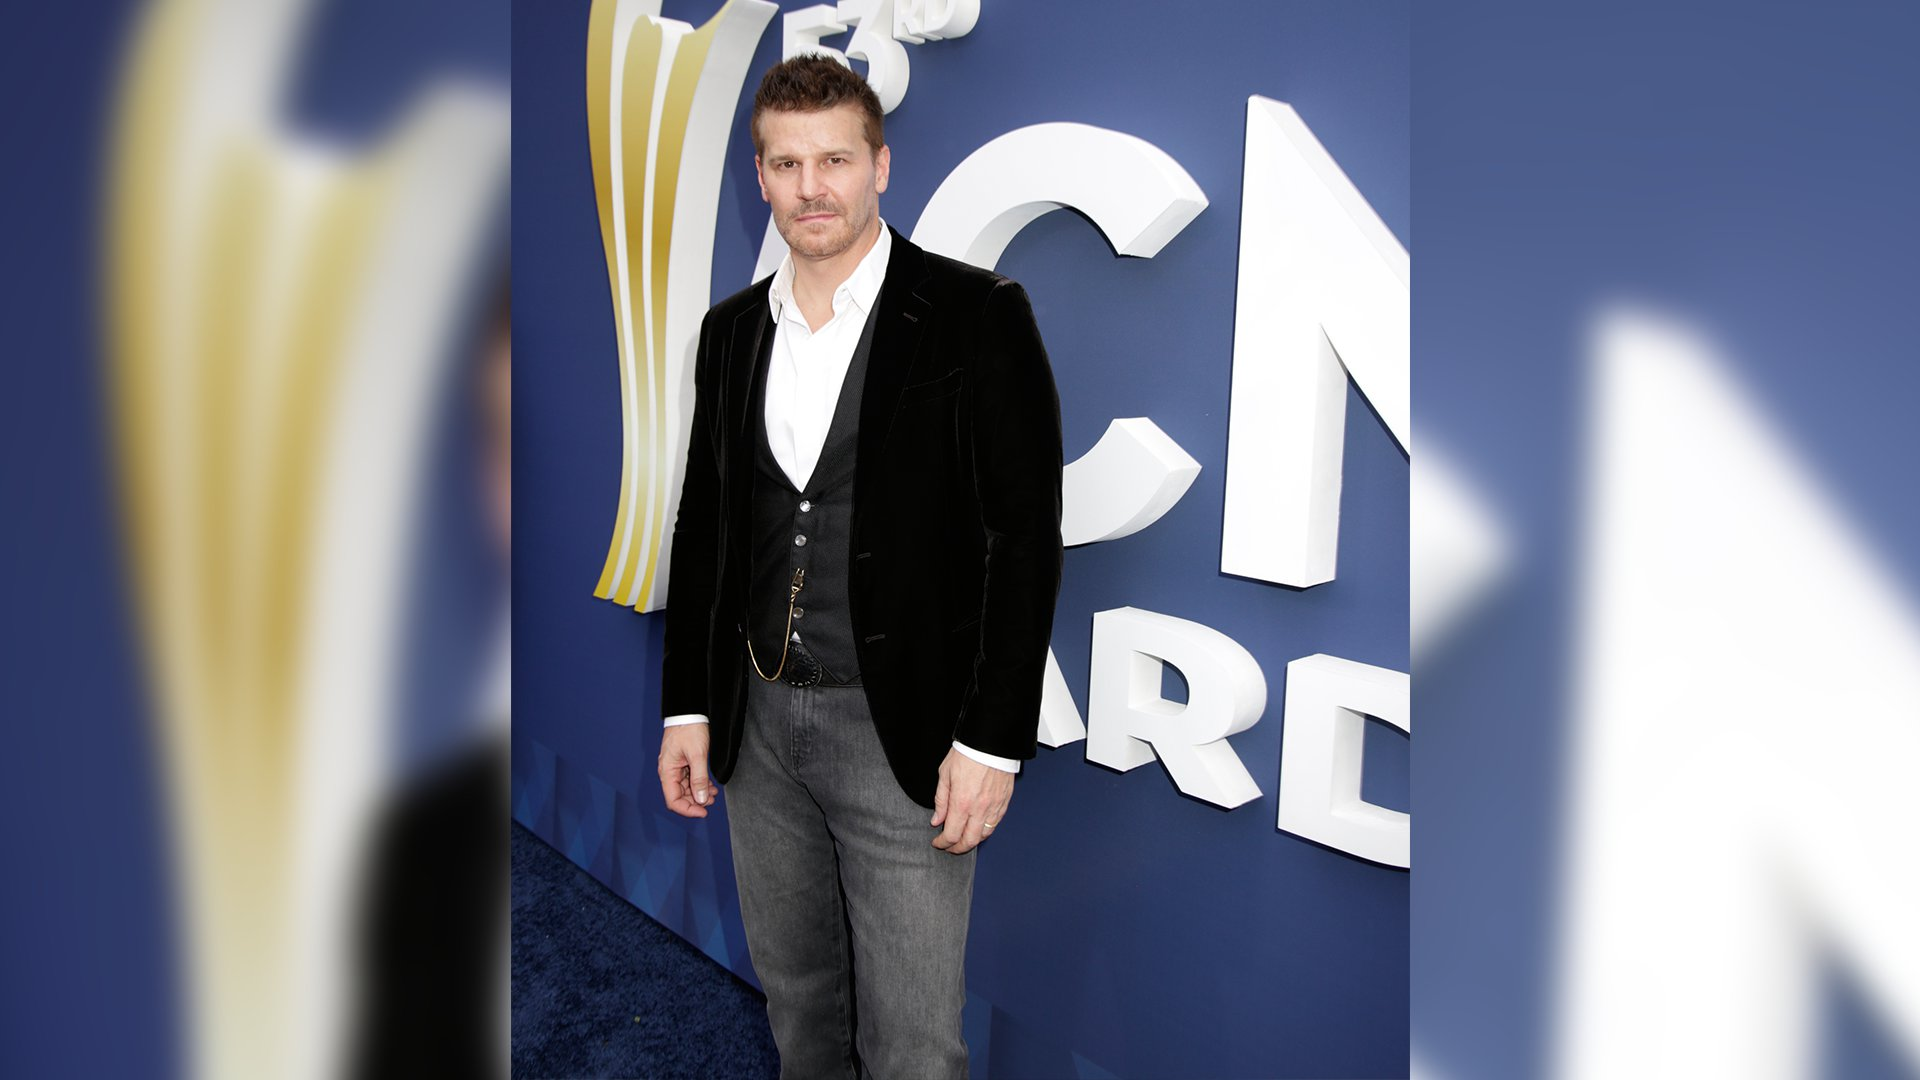 SEAL Team star David Boreanaz rolls through Vegas to present an ACM Award to one lucky winner.